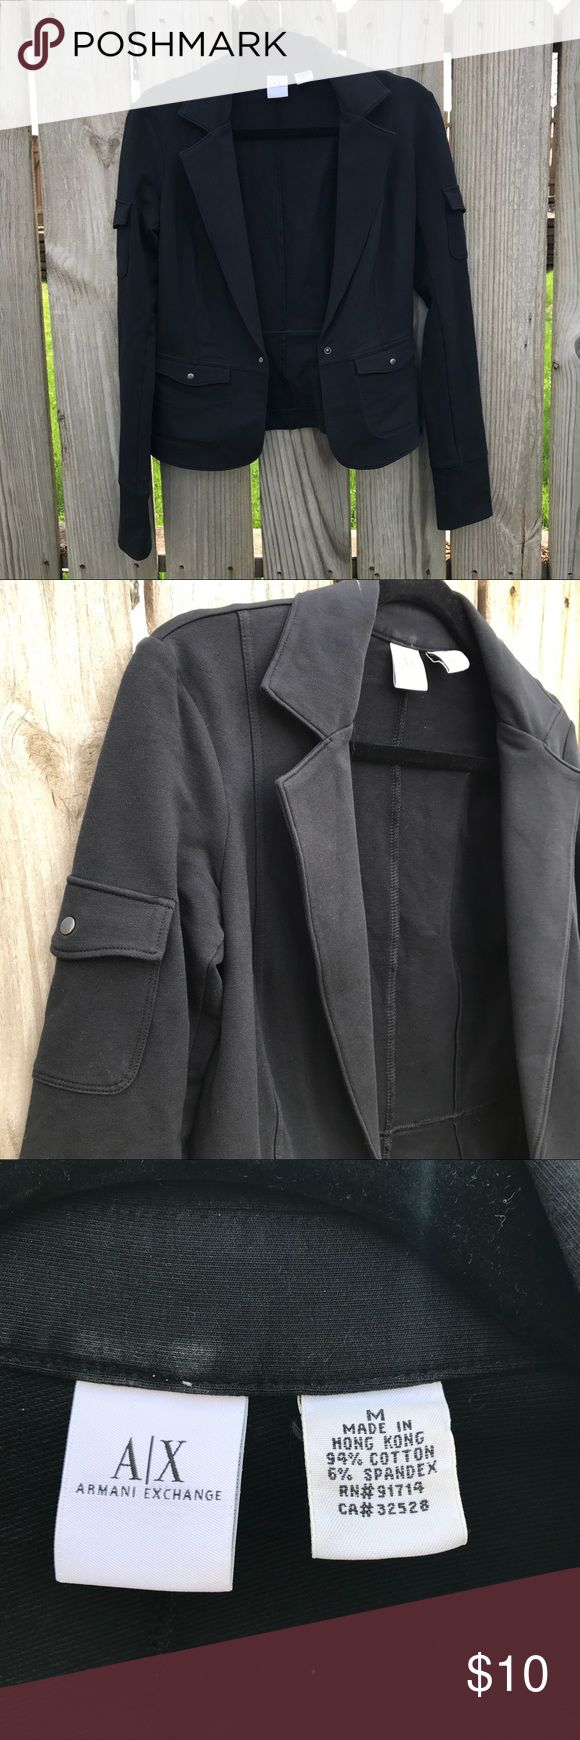 Armani Exchange casual blazer Really cute Armani Exchange blazer. Casual and fun. Pocket detail on the sleeves. Goes with any jean or dress combo. A/X Armani Exchange Jackets & Coats Blazers